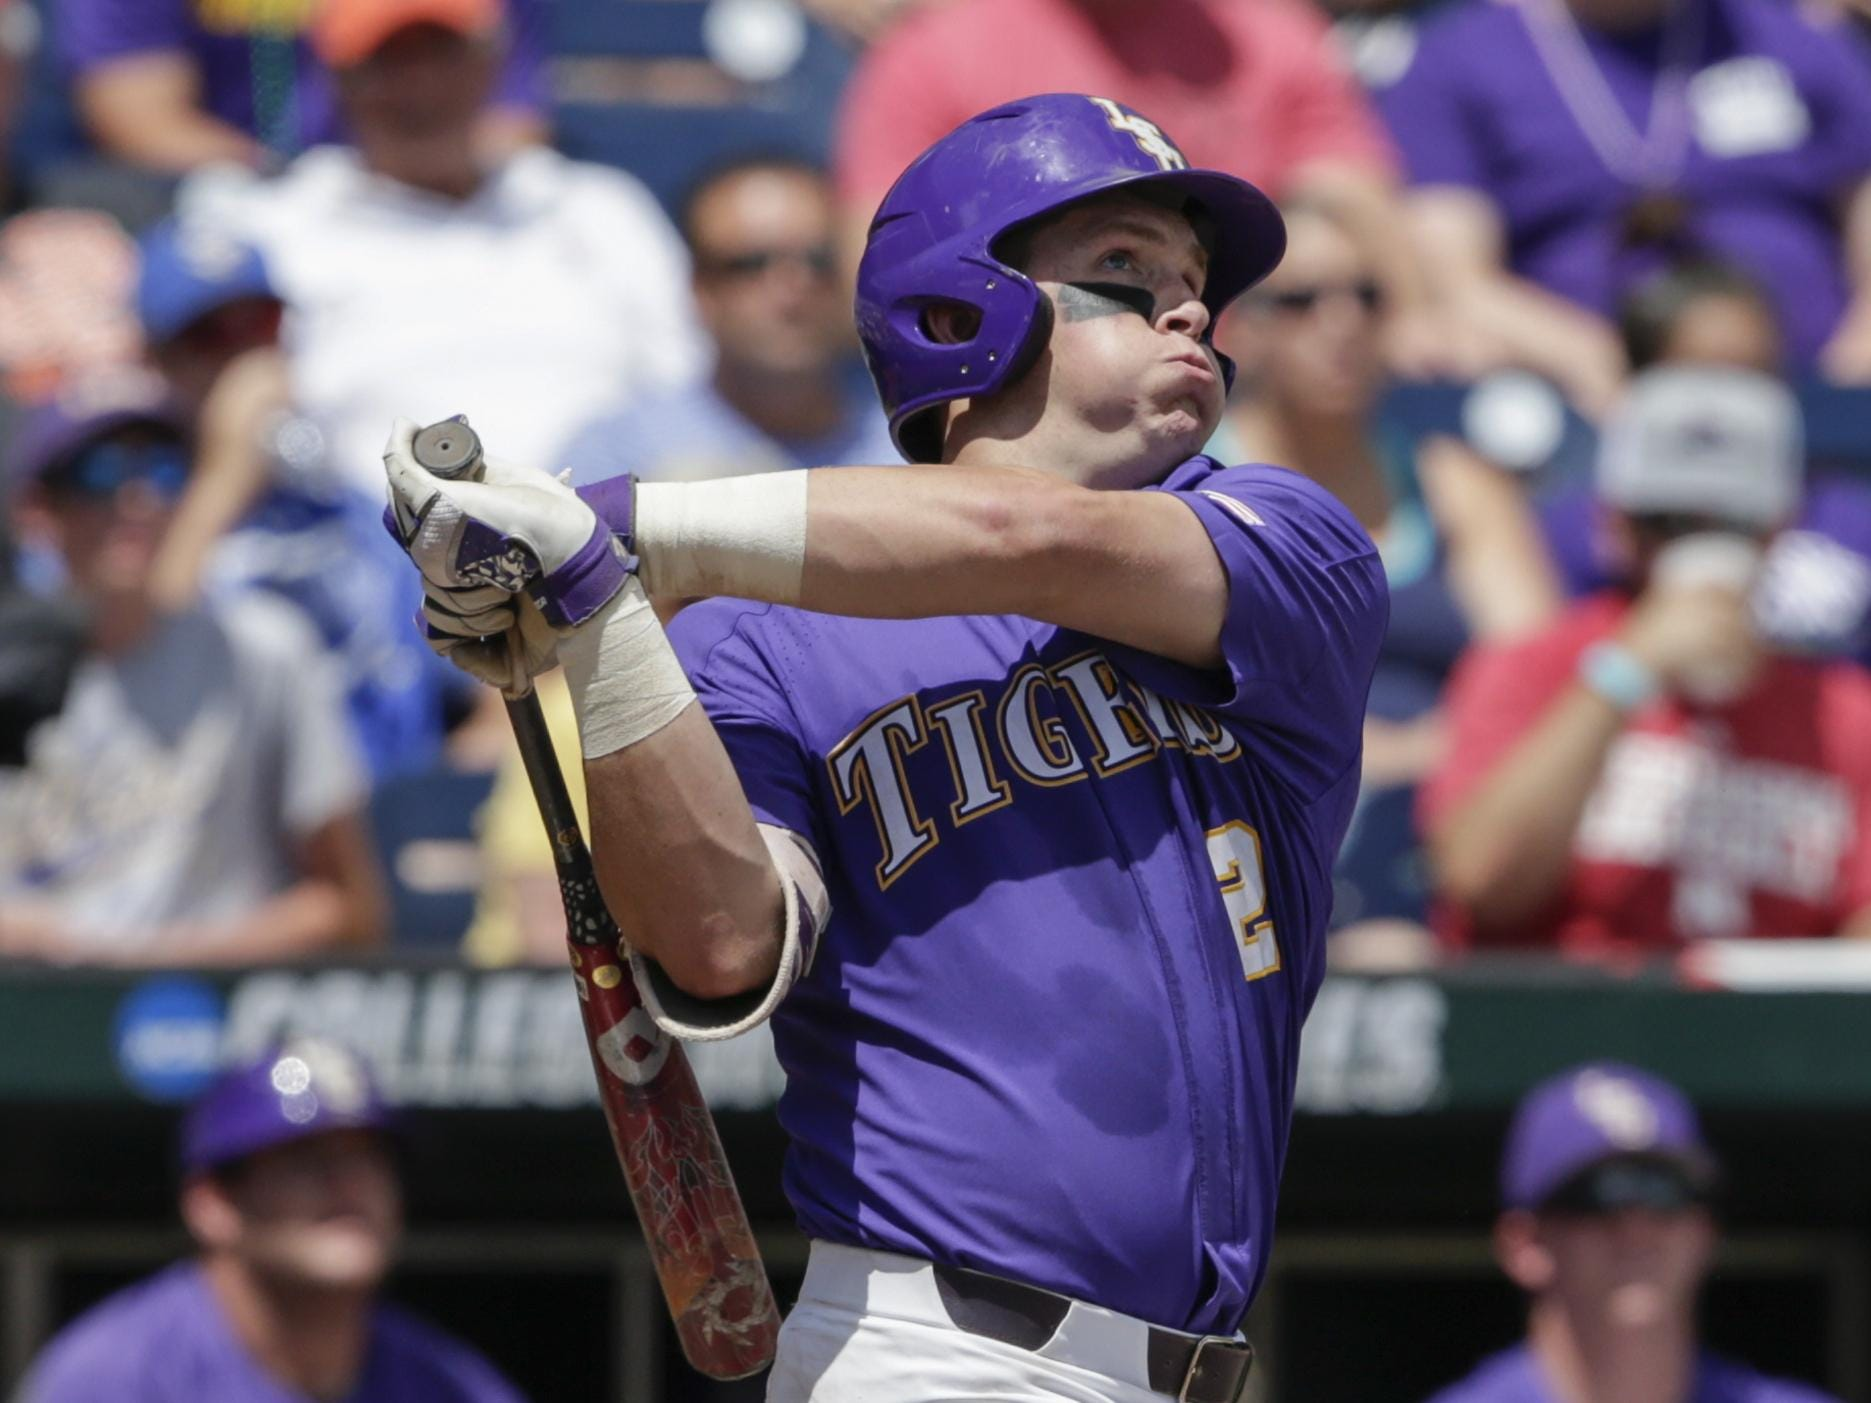 LSU's Michael Papierski (2) follows through on his three-run home run against Oregon State in the third inning of an NCAA College World Series baseball elimination game in Omaha, Neb., Saturday.